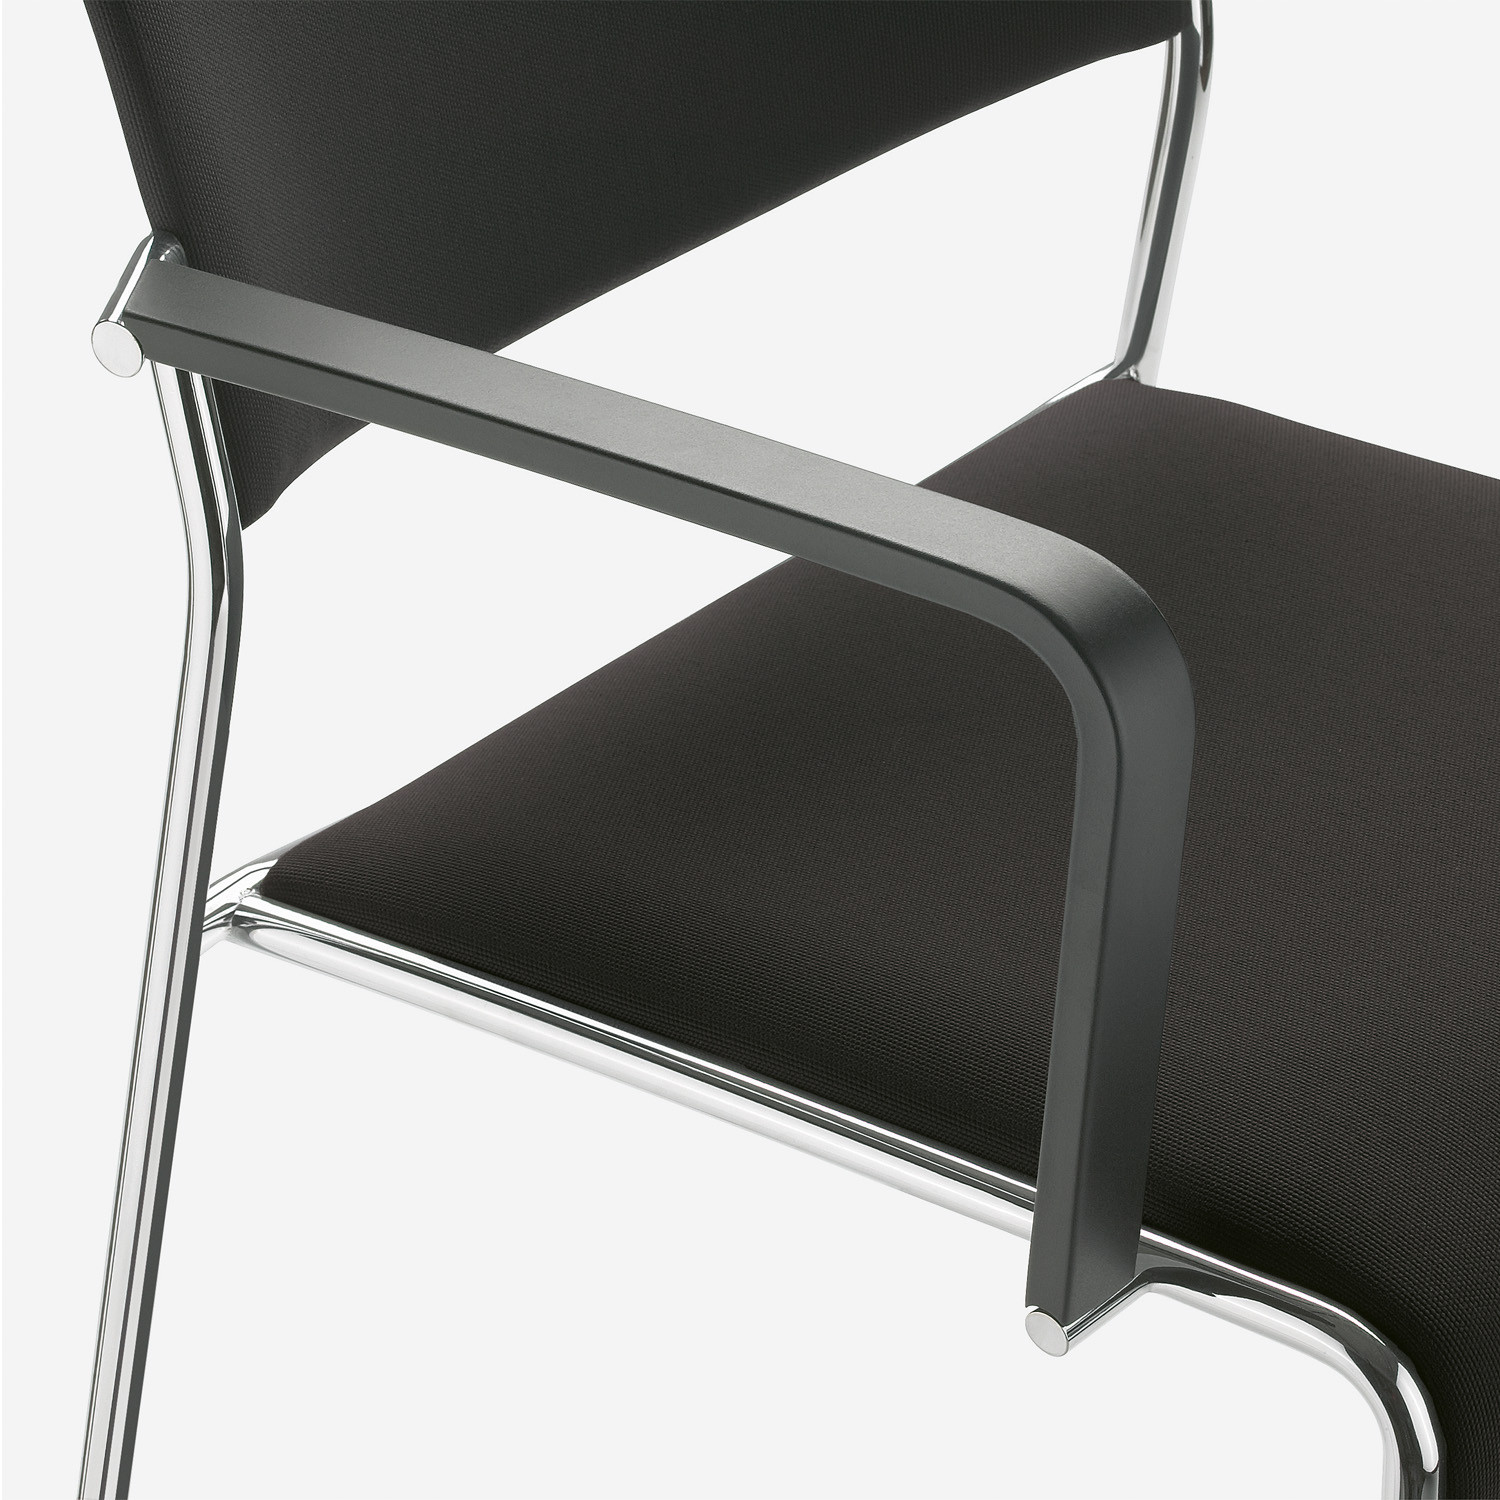 Linos Chair with ergonomic armrests made from hygienic plastic